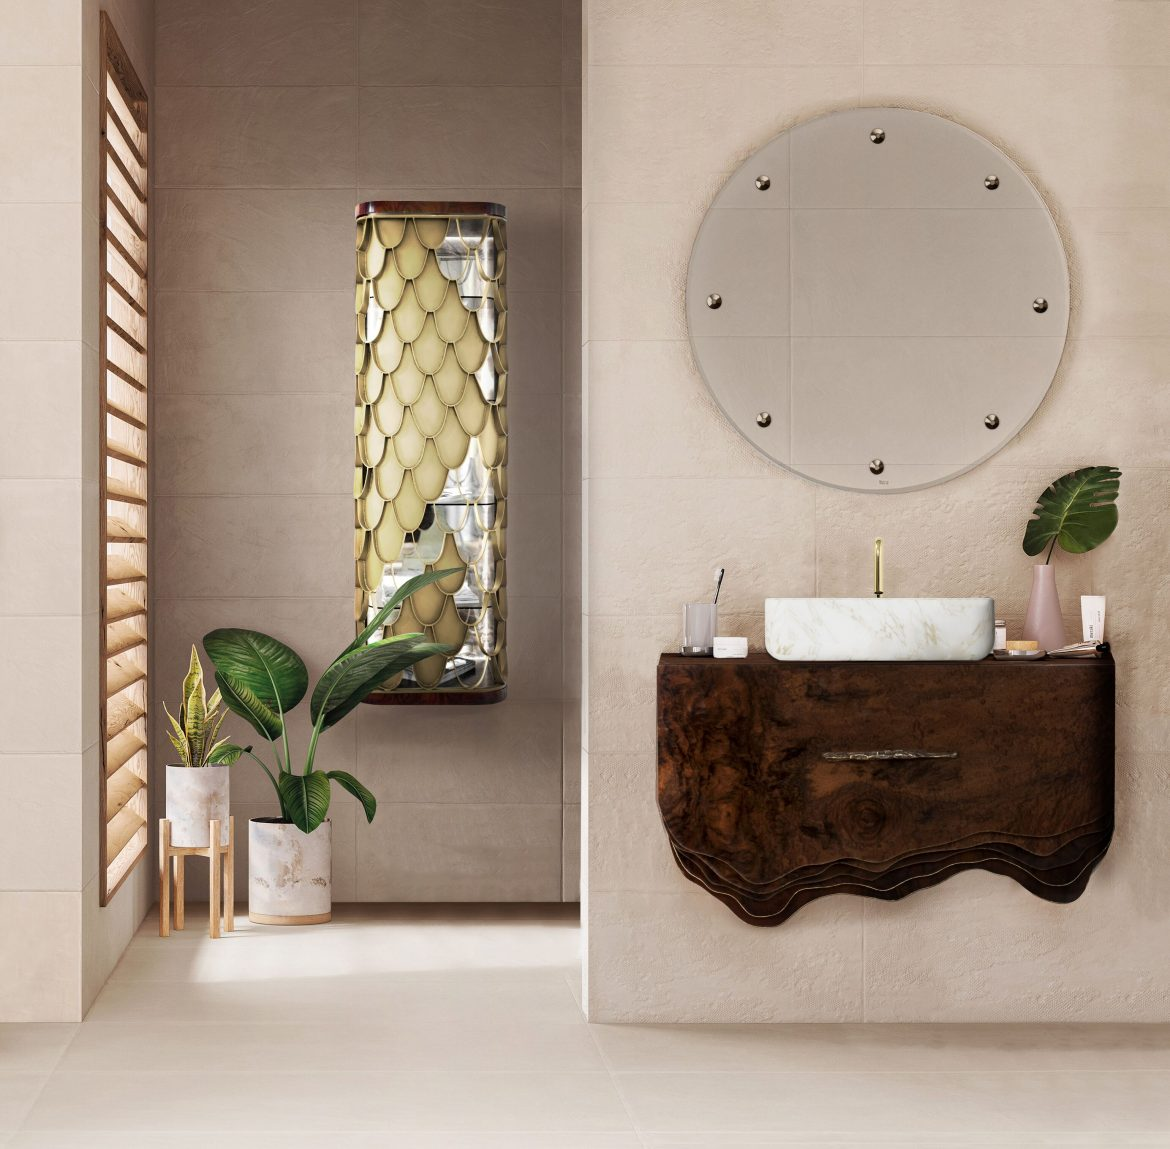 Be Inspired By These Top Luxury Bathroom Design Ideas For 2020 luxury bathroom design Luxury Bathroom Design: Be Inspired By These Top Ideas For 2020 case goods 6